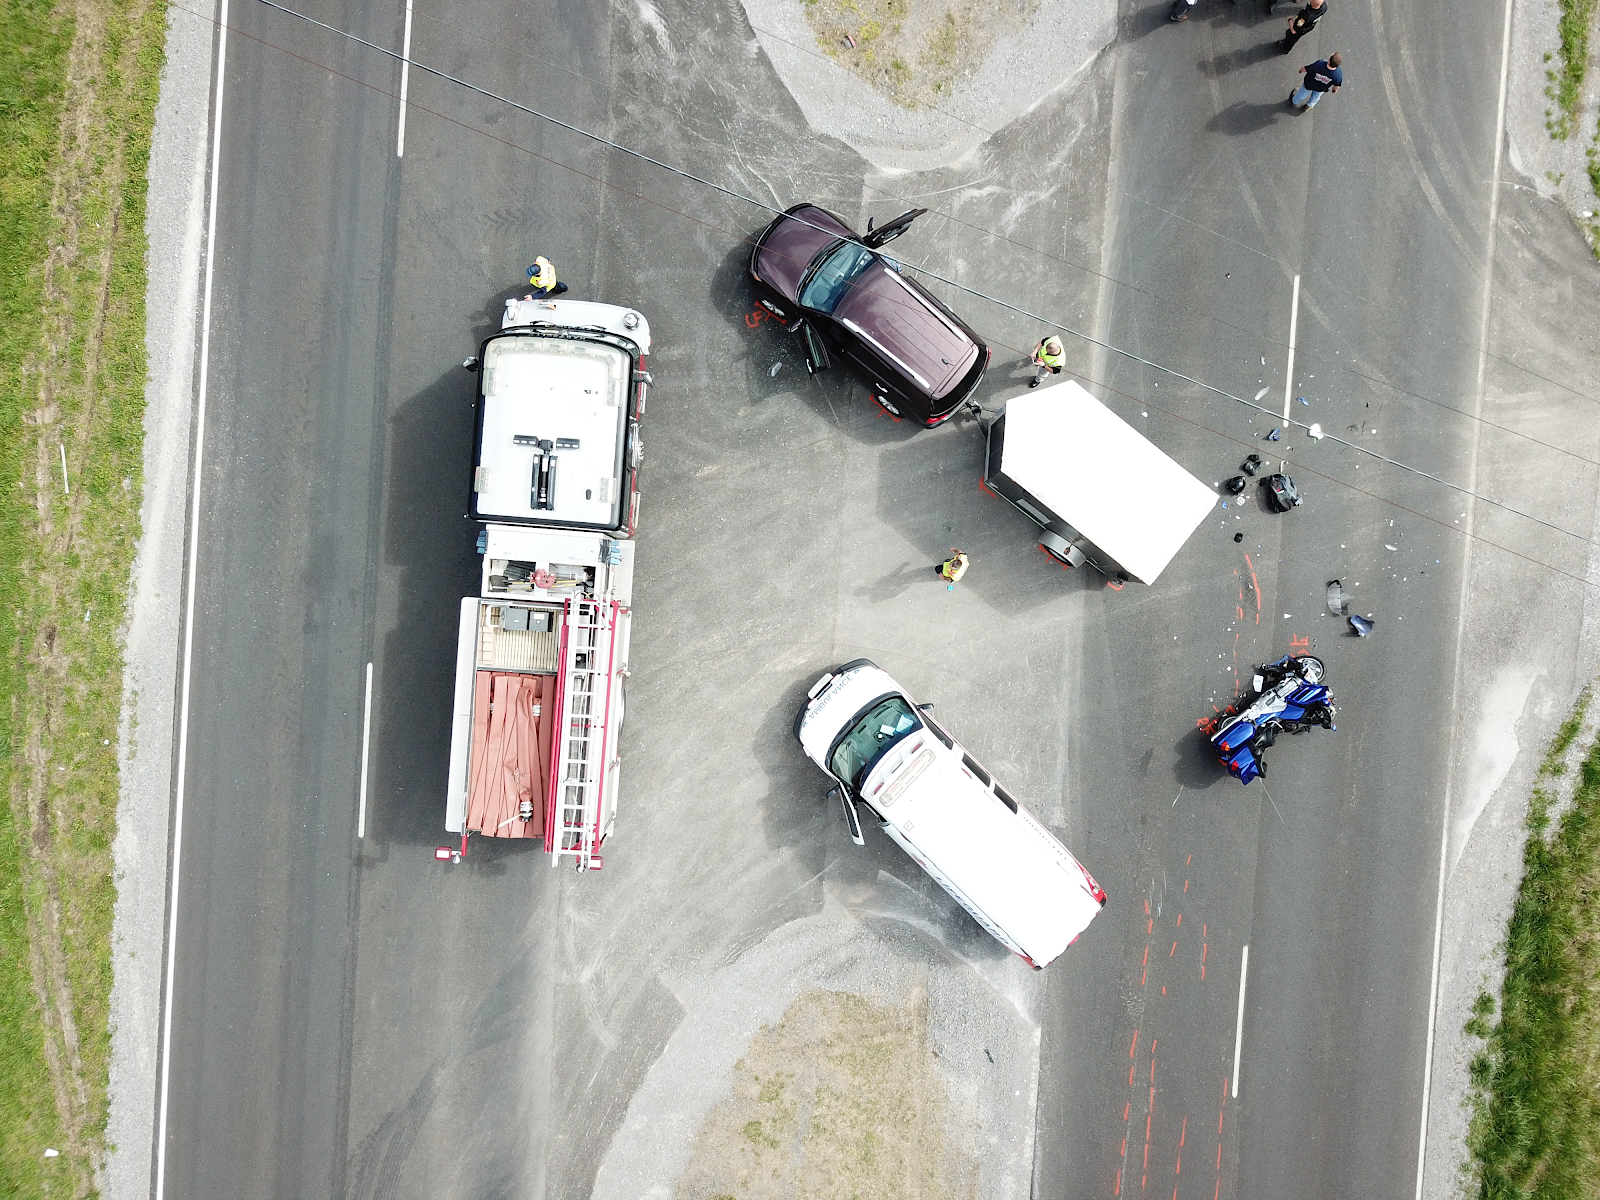 Transforming Accident Investigation With Drones